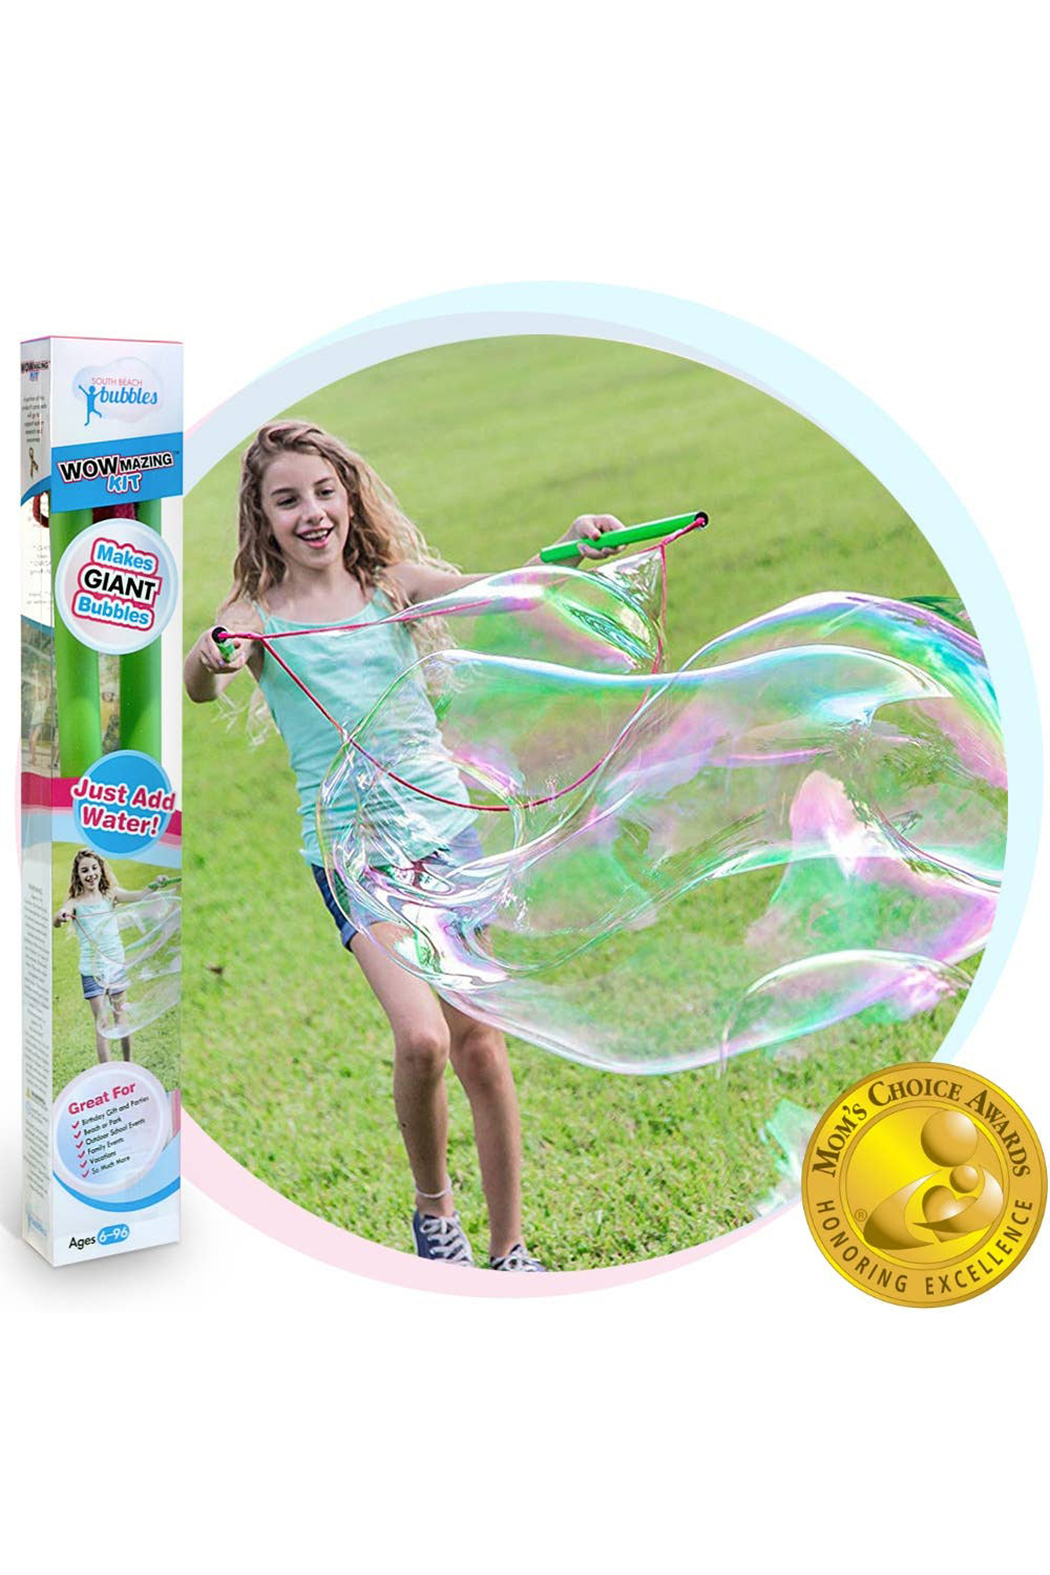 South Beach Bubbles Wowmazing Giant Bubble Concentrate Kit - Main Image